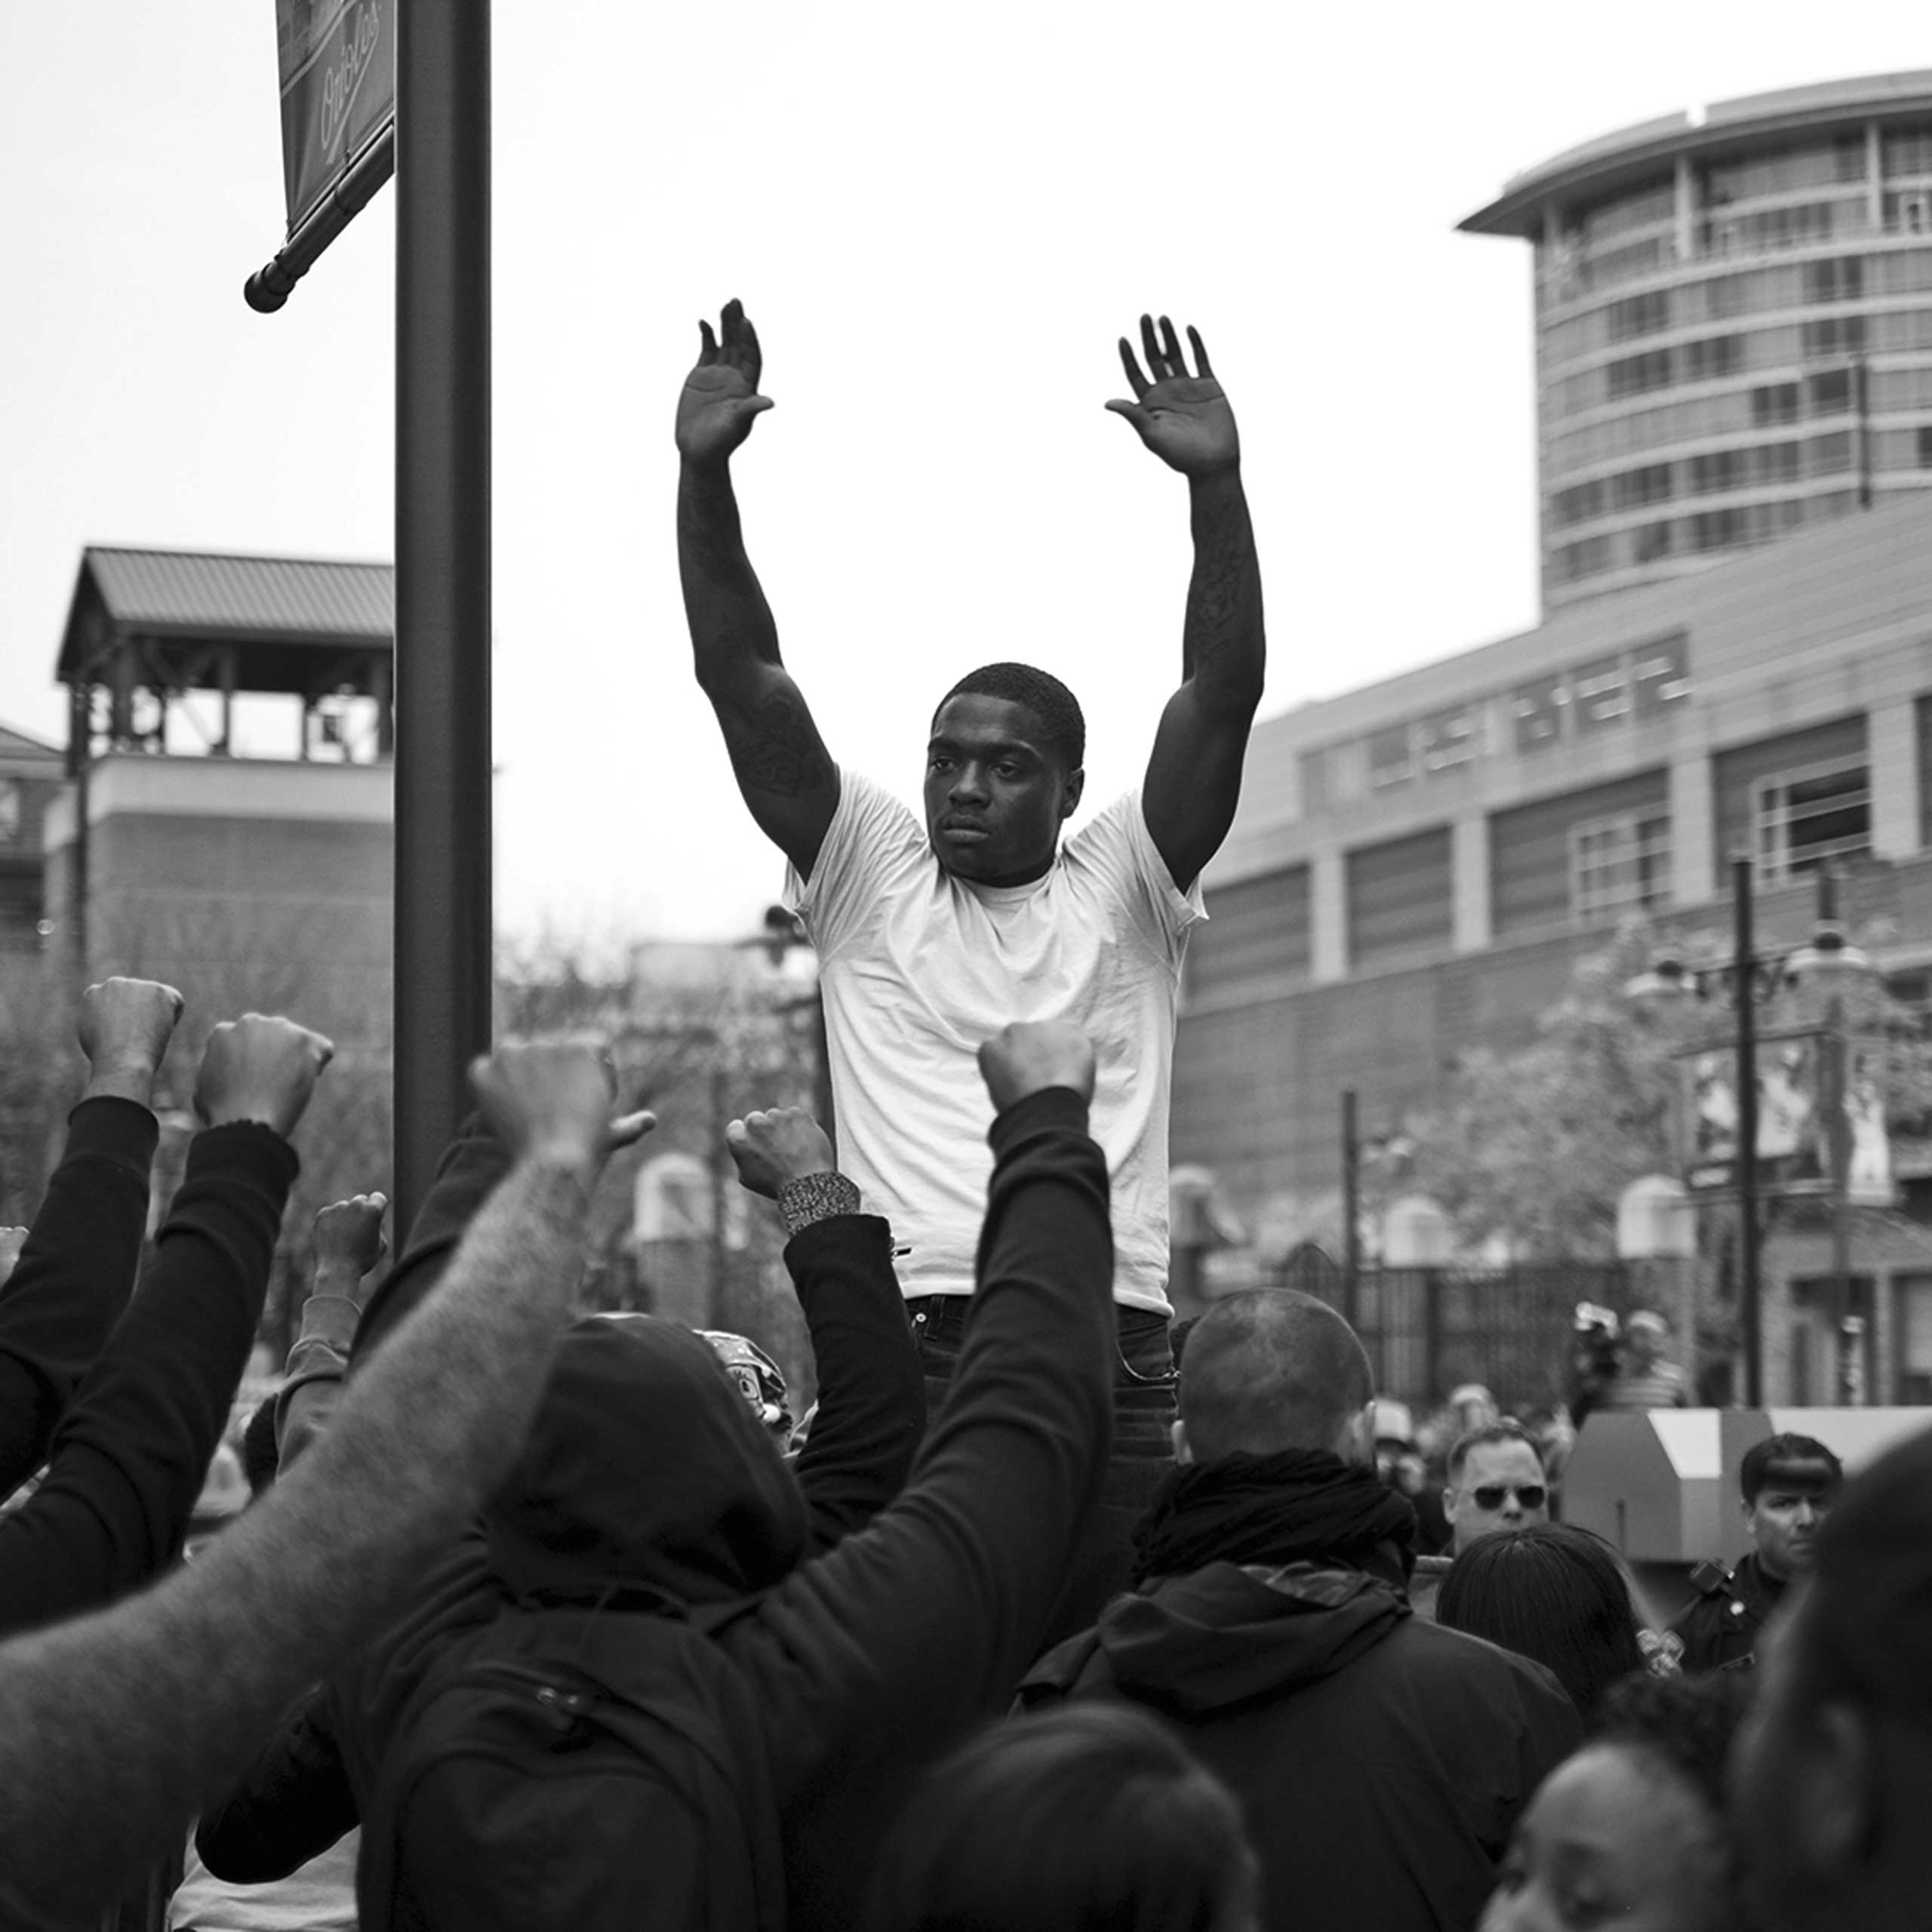 Protestor lead a march in Baltimore on April 25, 2015.